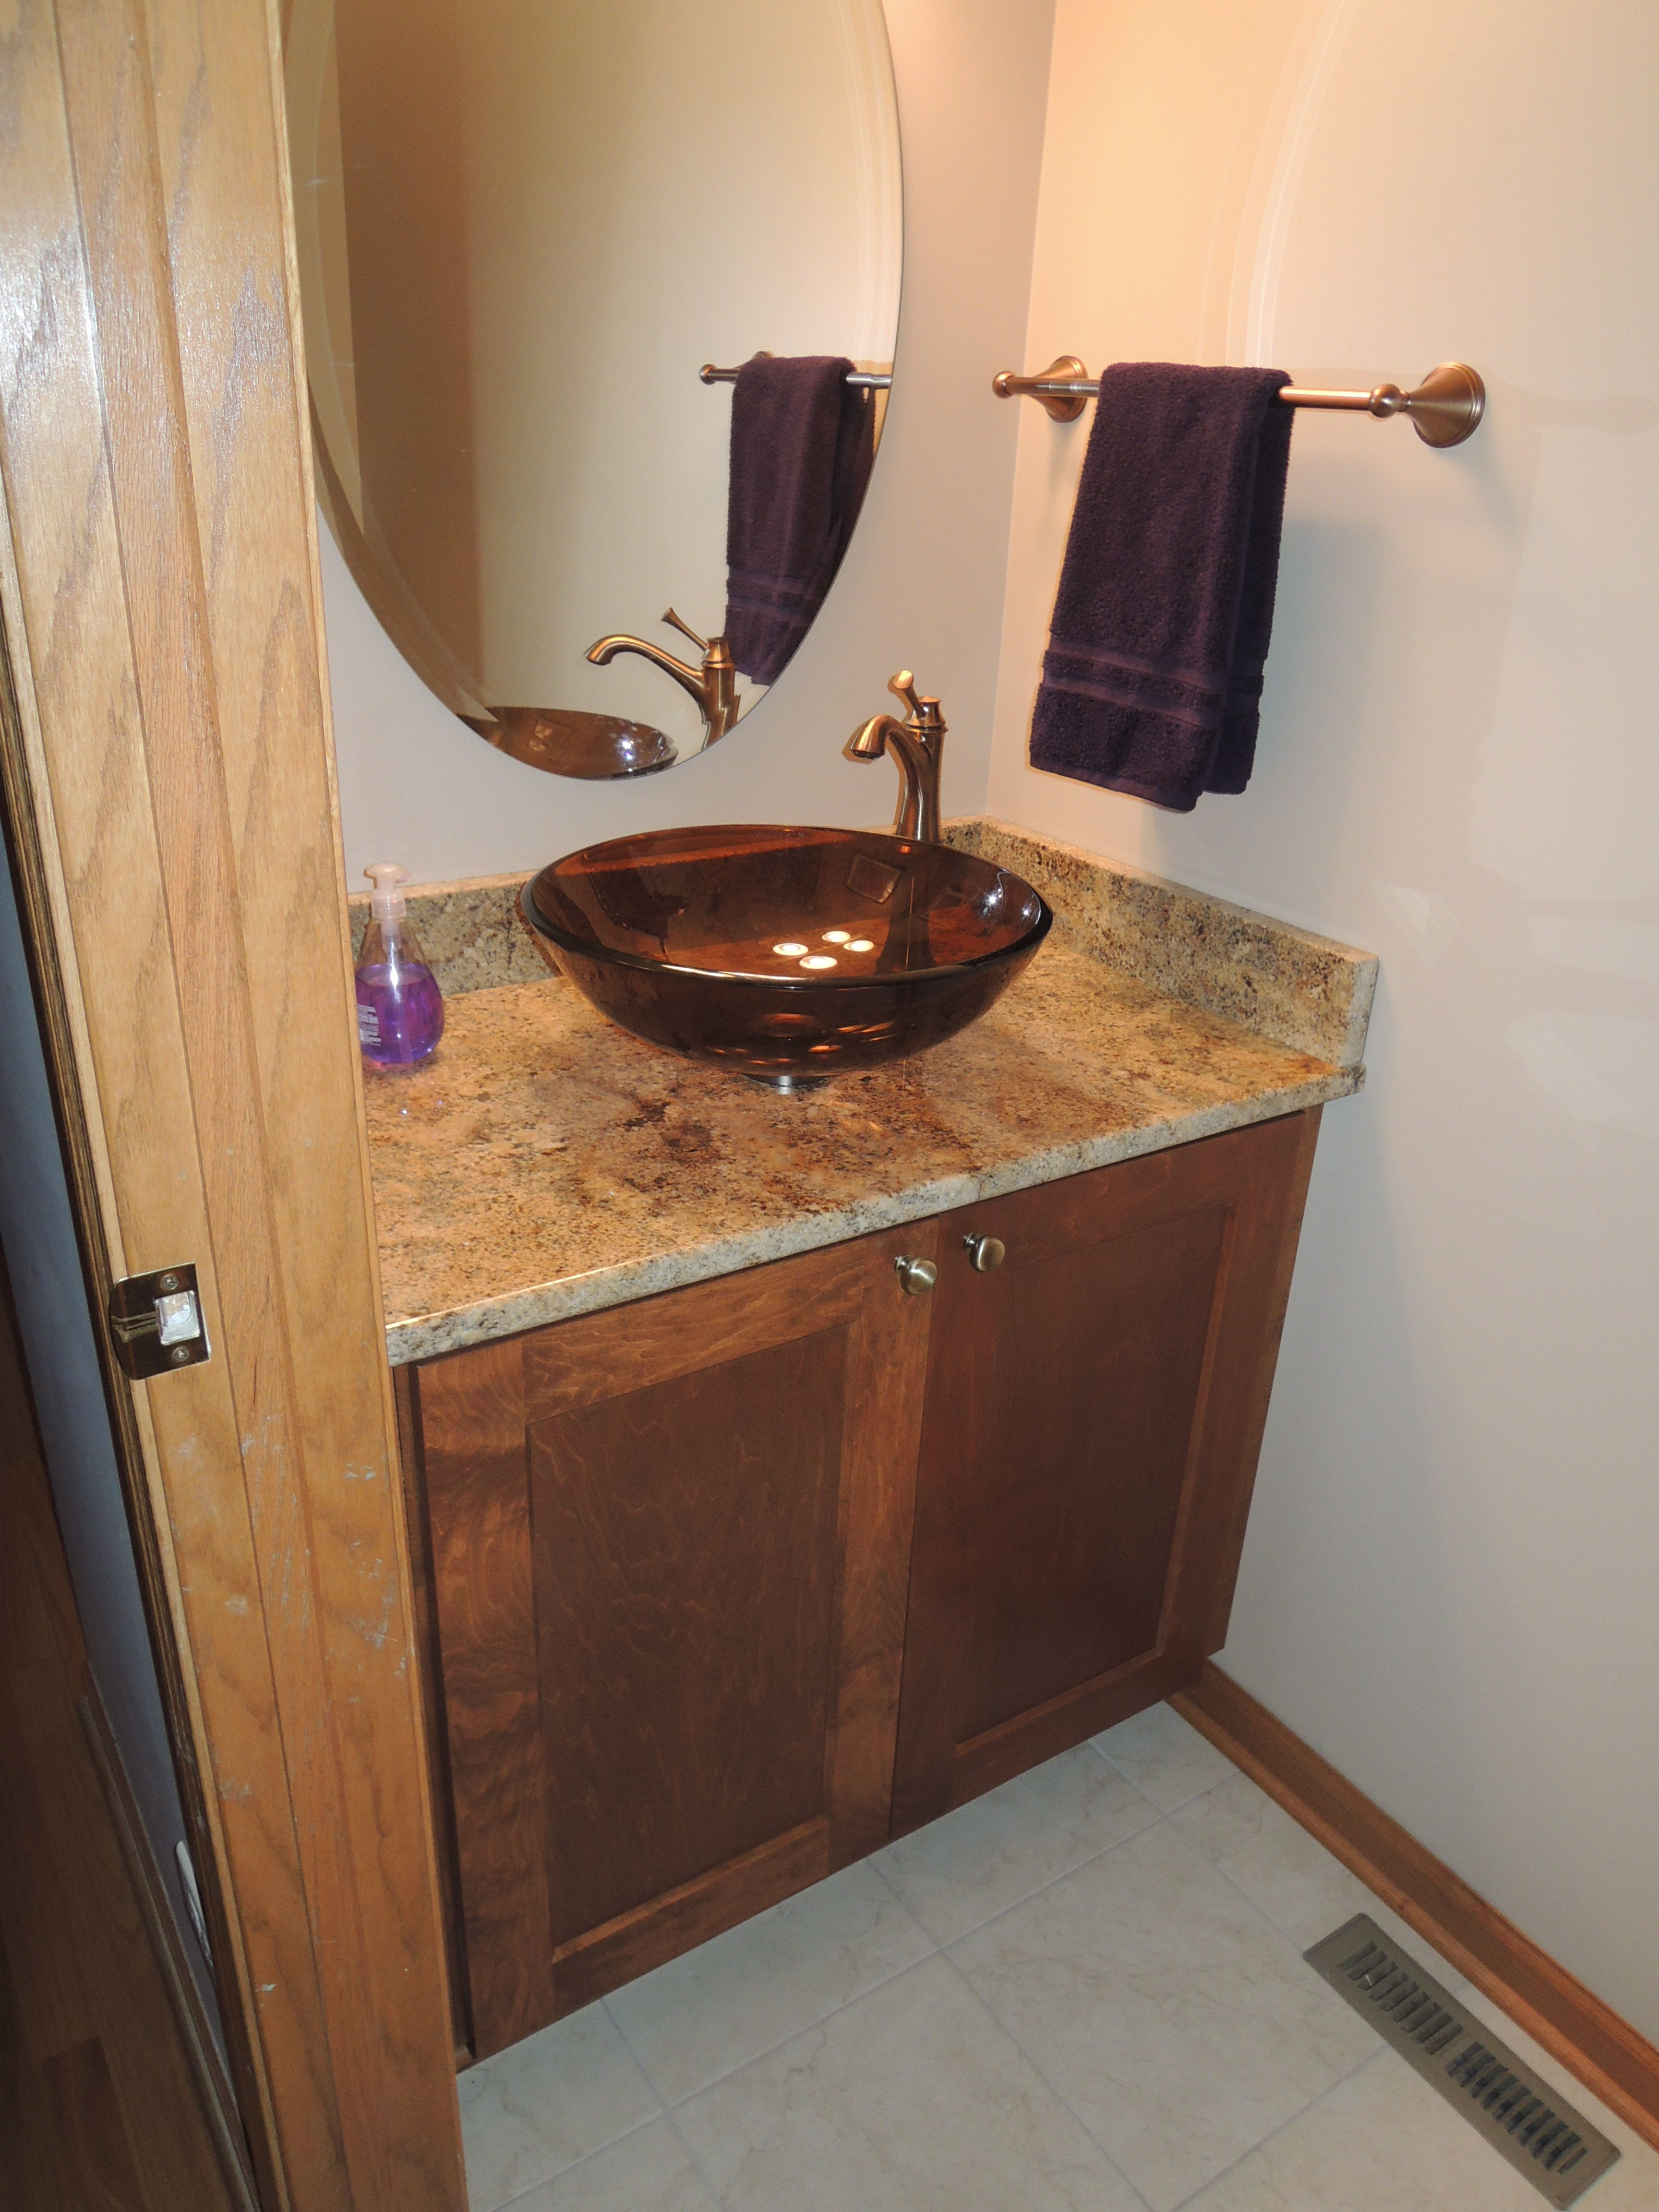 Scholl Construction In Crystal Lake IL Updated This Bathrooms Look - Bathroom remodeling crystal lake il